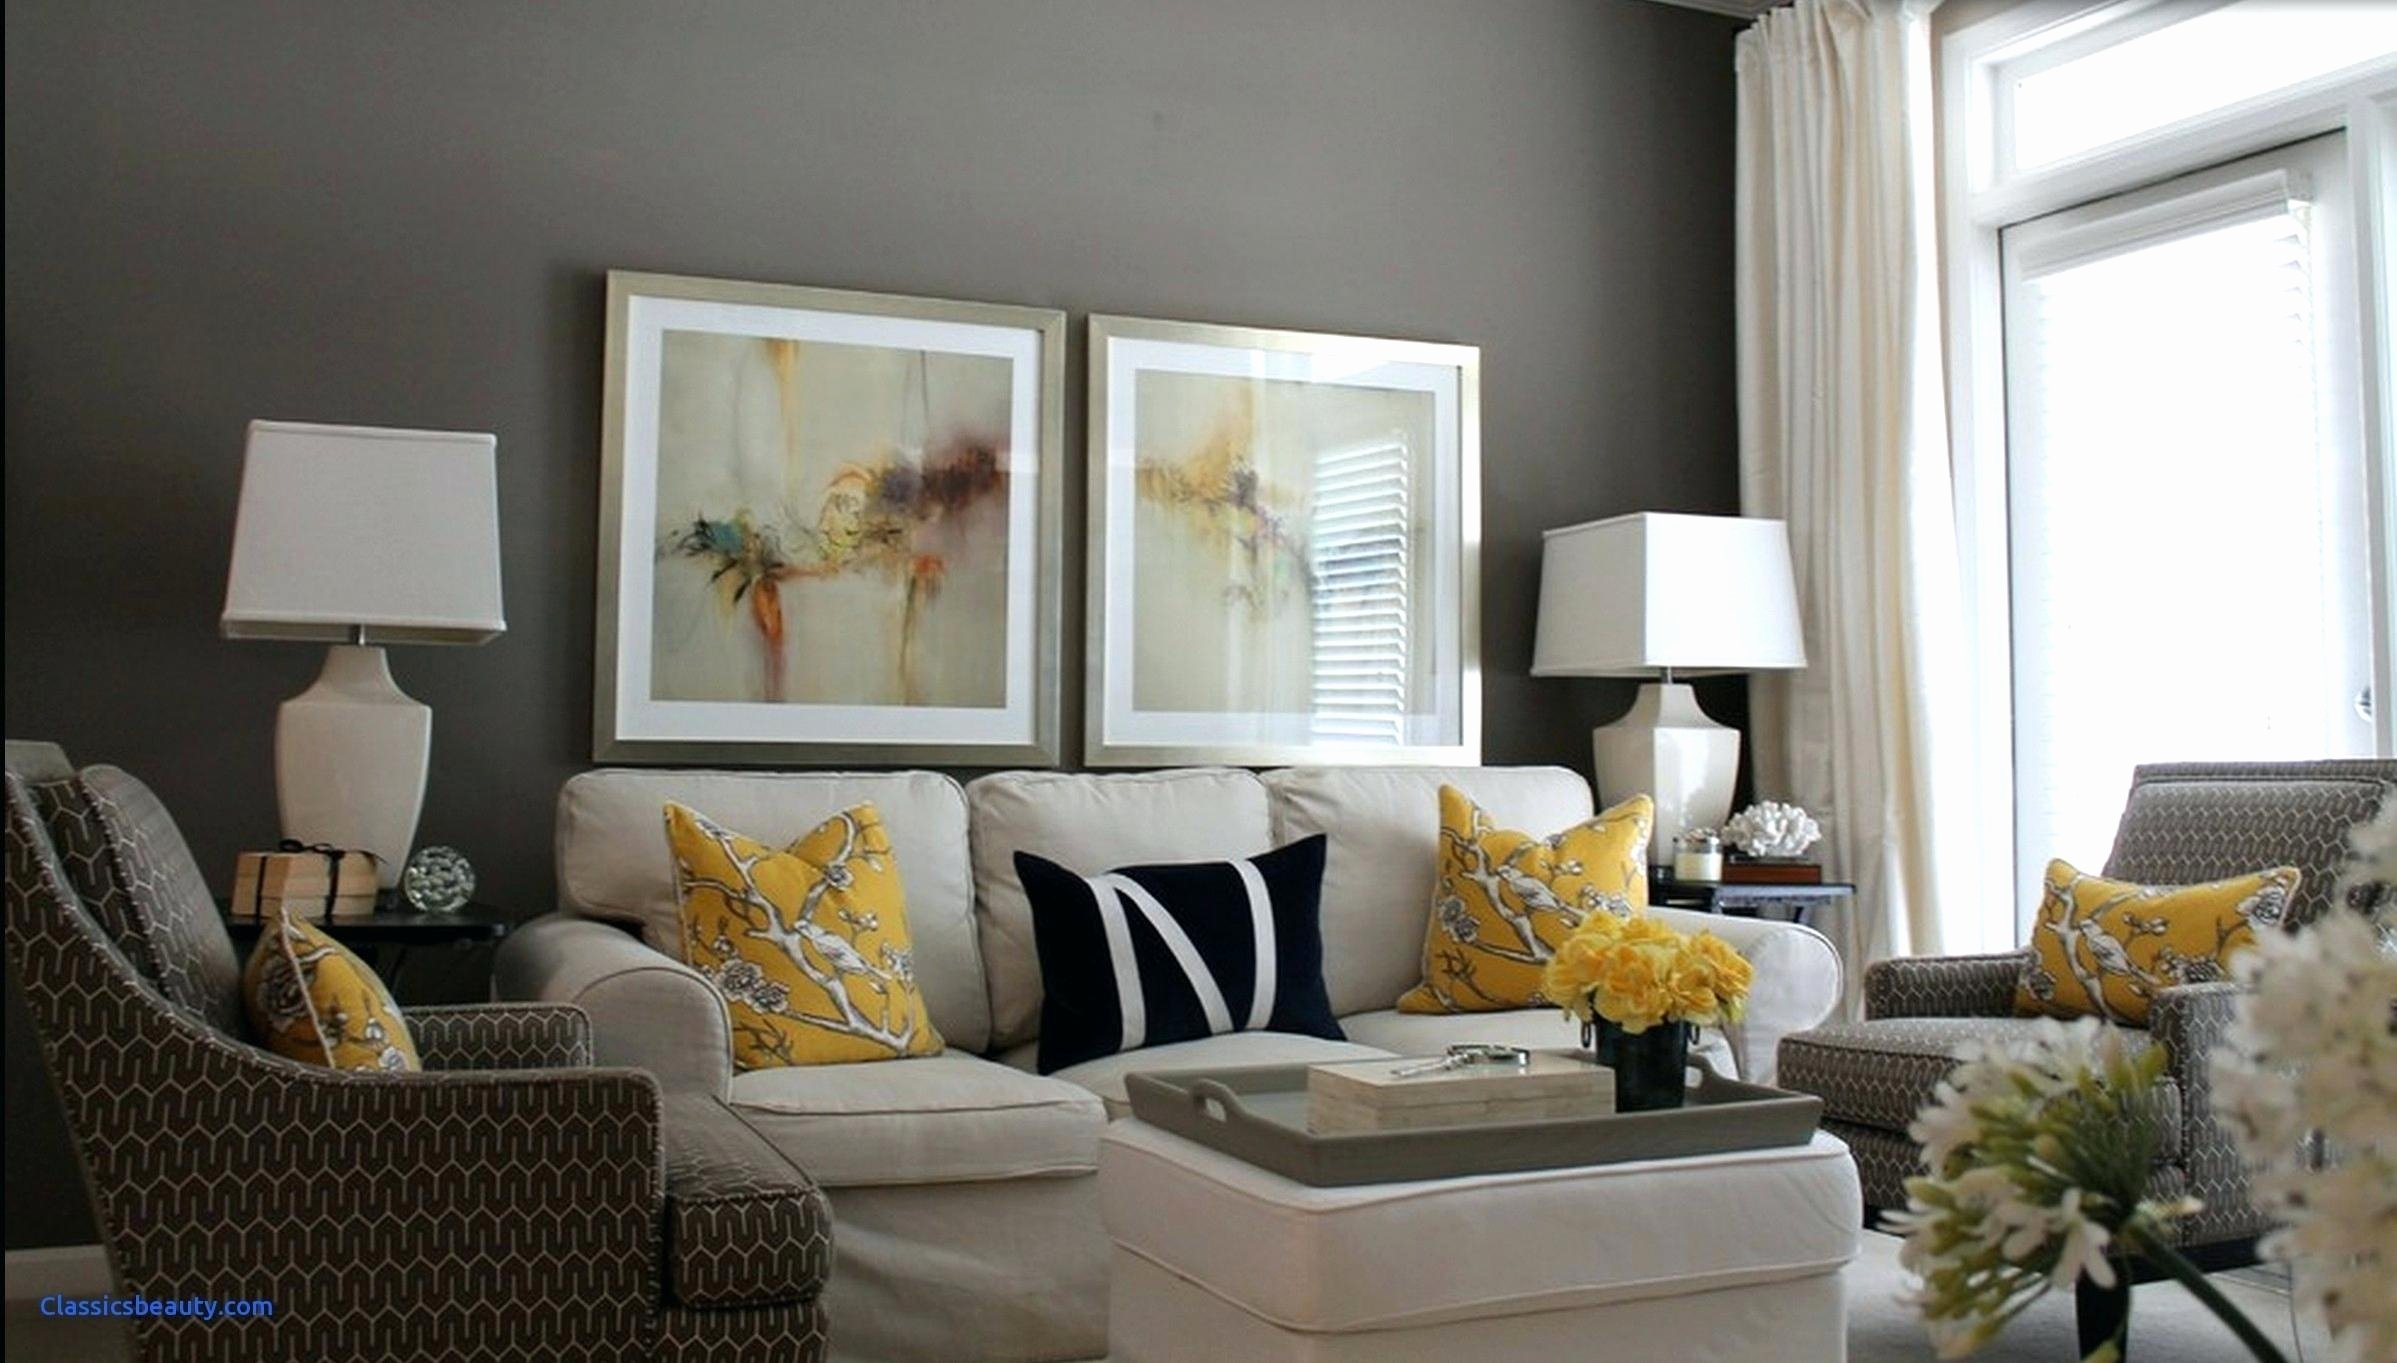 10 Beautiful Gray And Yellow Living Room Ideas grey yellow living room ideas awesome grey and yellow living room 2020